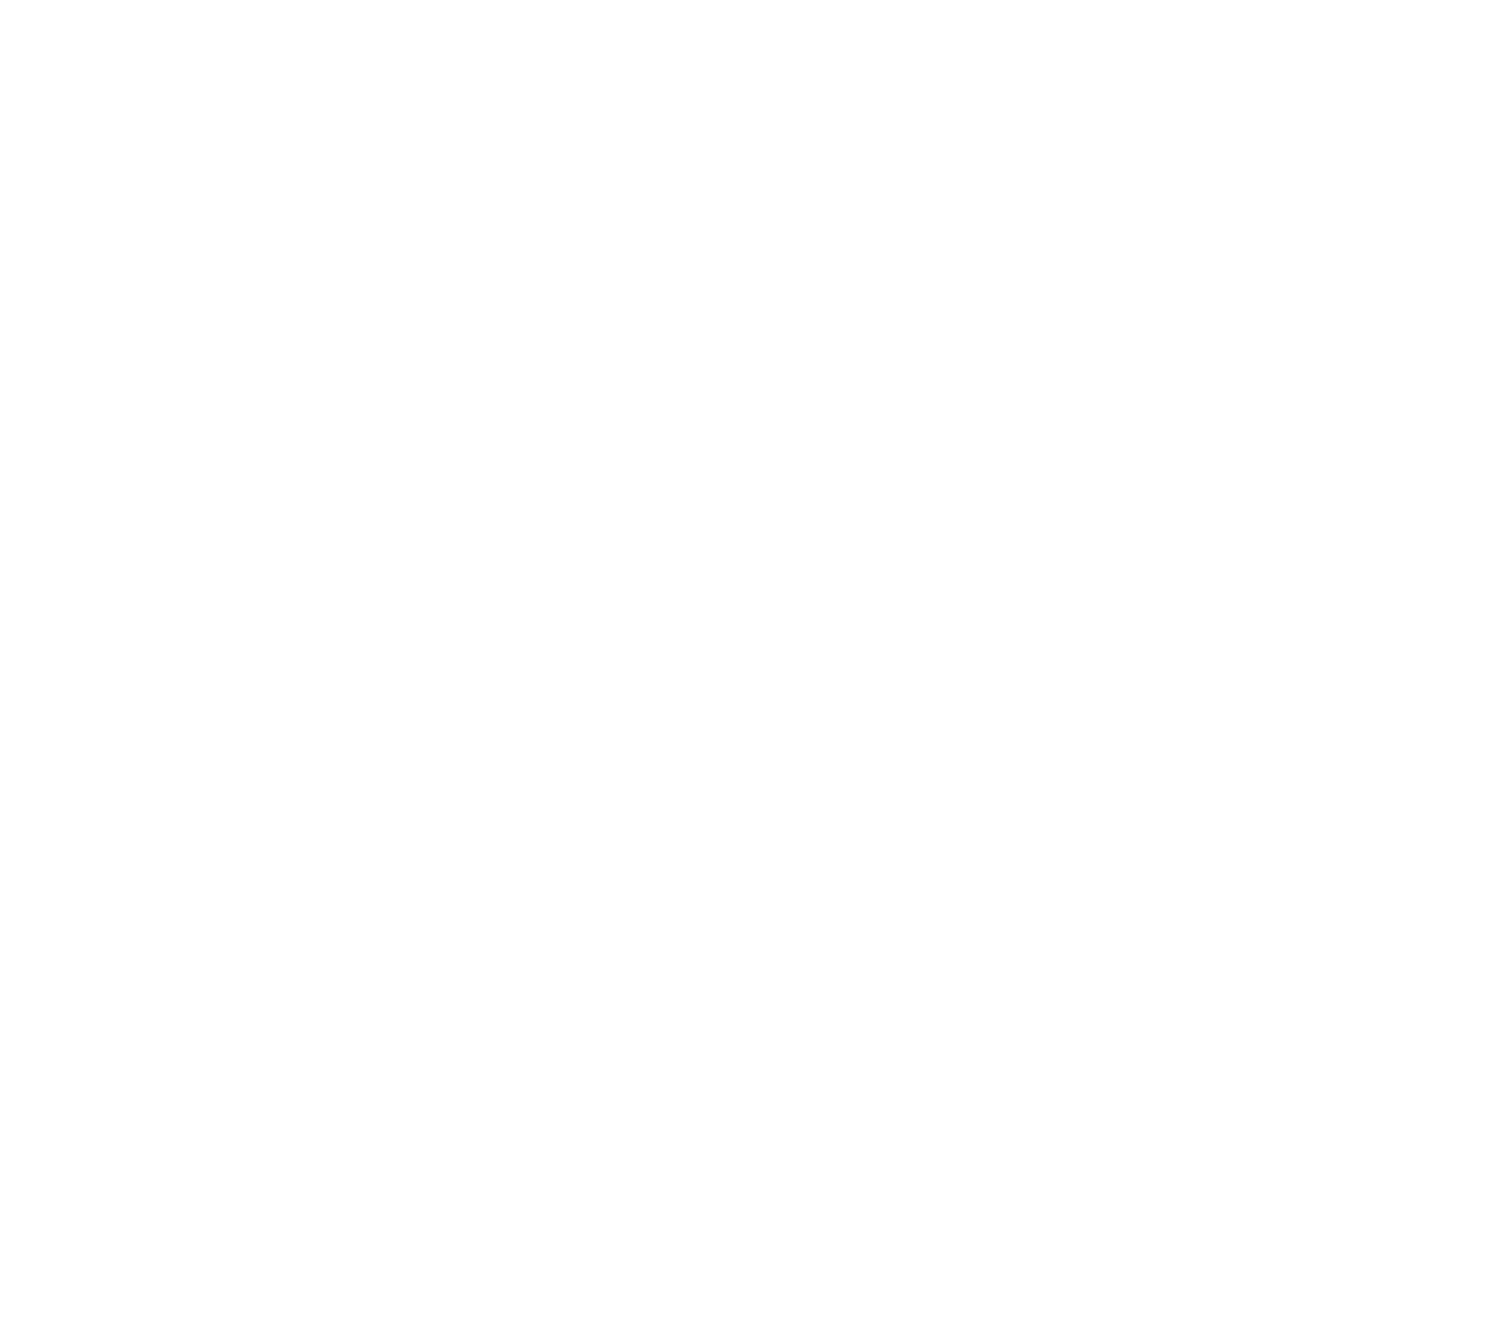 Appliance Repairs John Hull Electrics